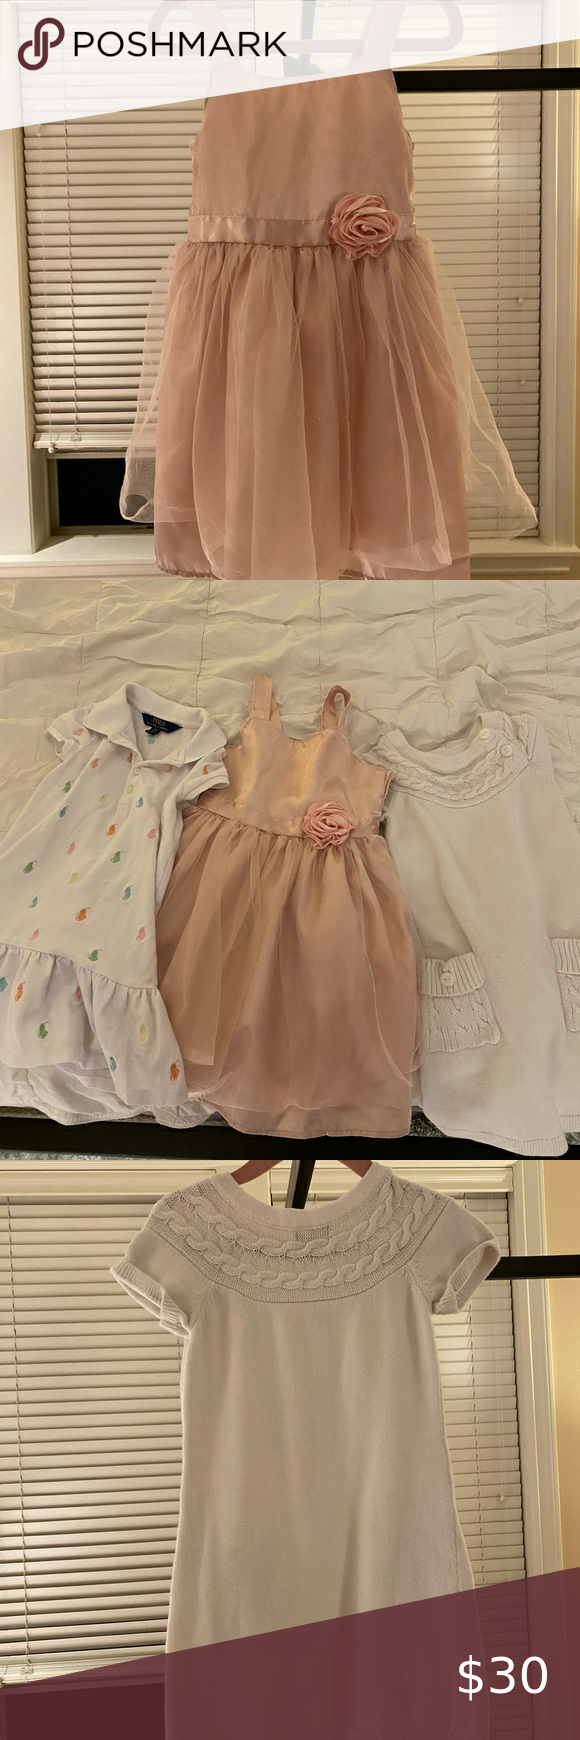 Bundle Of 3 Dresses For Girls 4t Bundle Of Three Dresses For 4t Little Girls Baby Gap White Knit Dress Carter S F White Knit Dress Girls Dresses Dresses [ 1740 x 580 Pixel ]